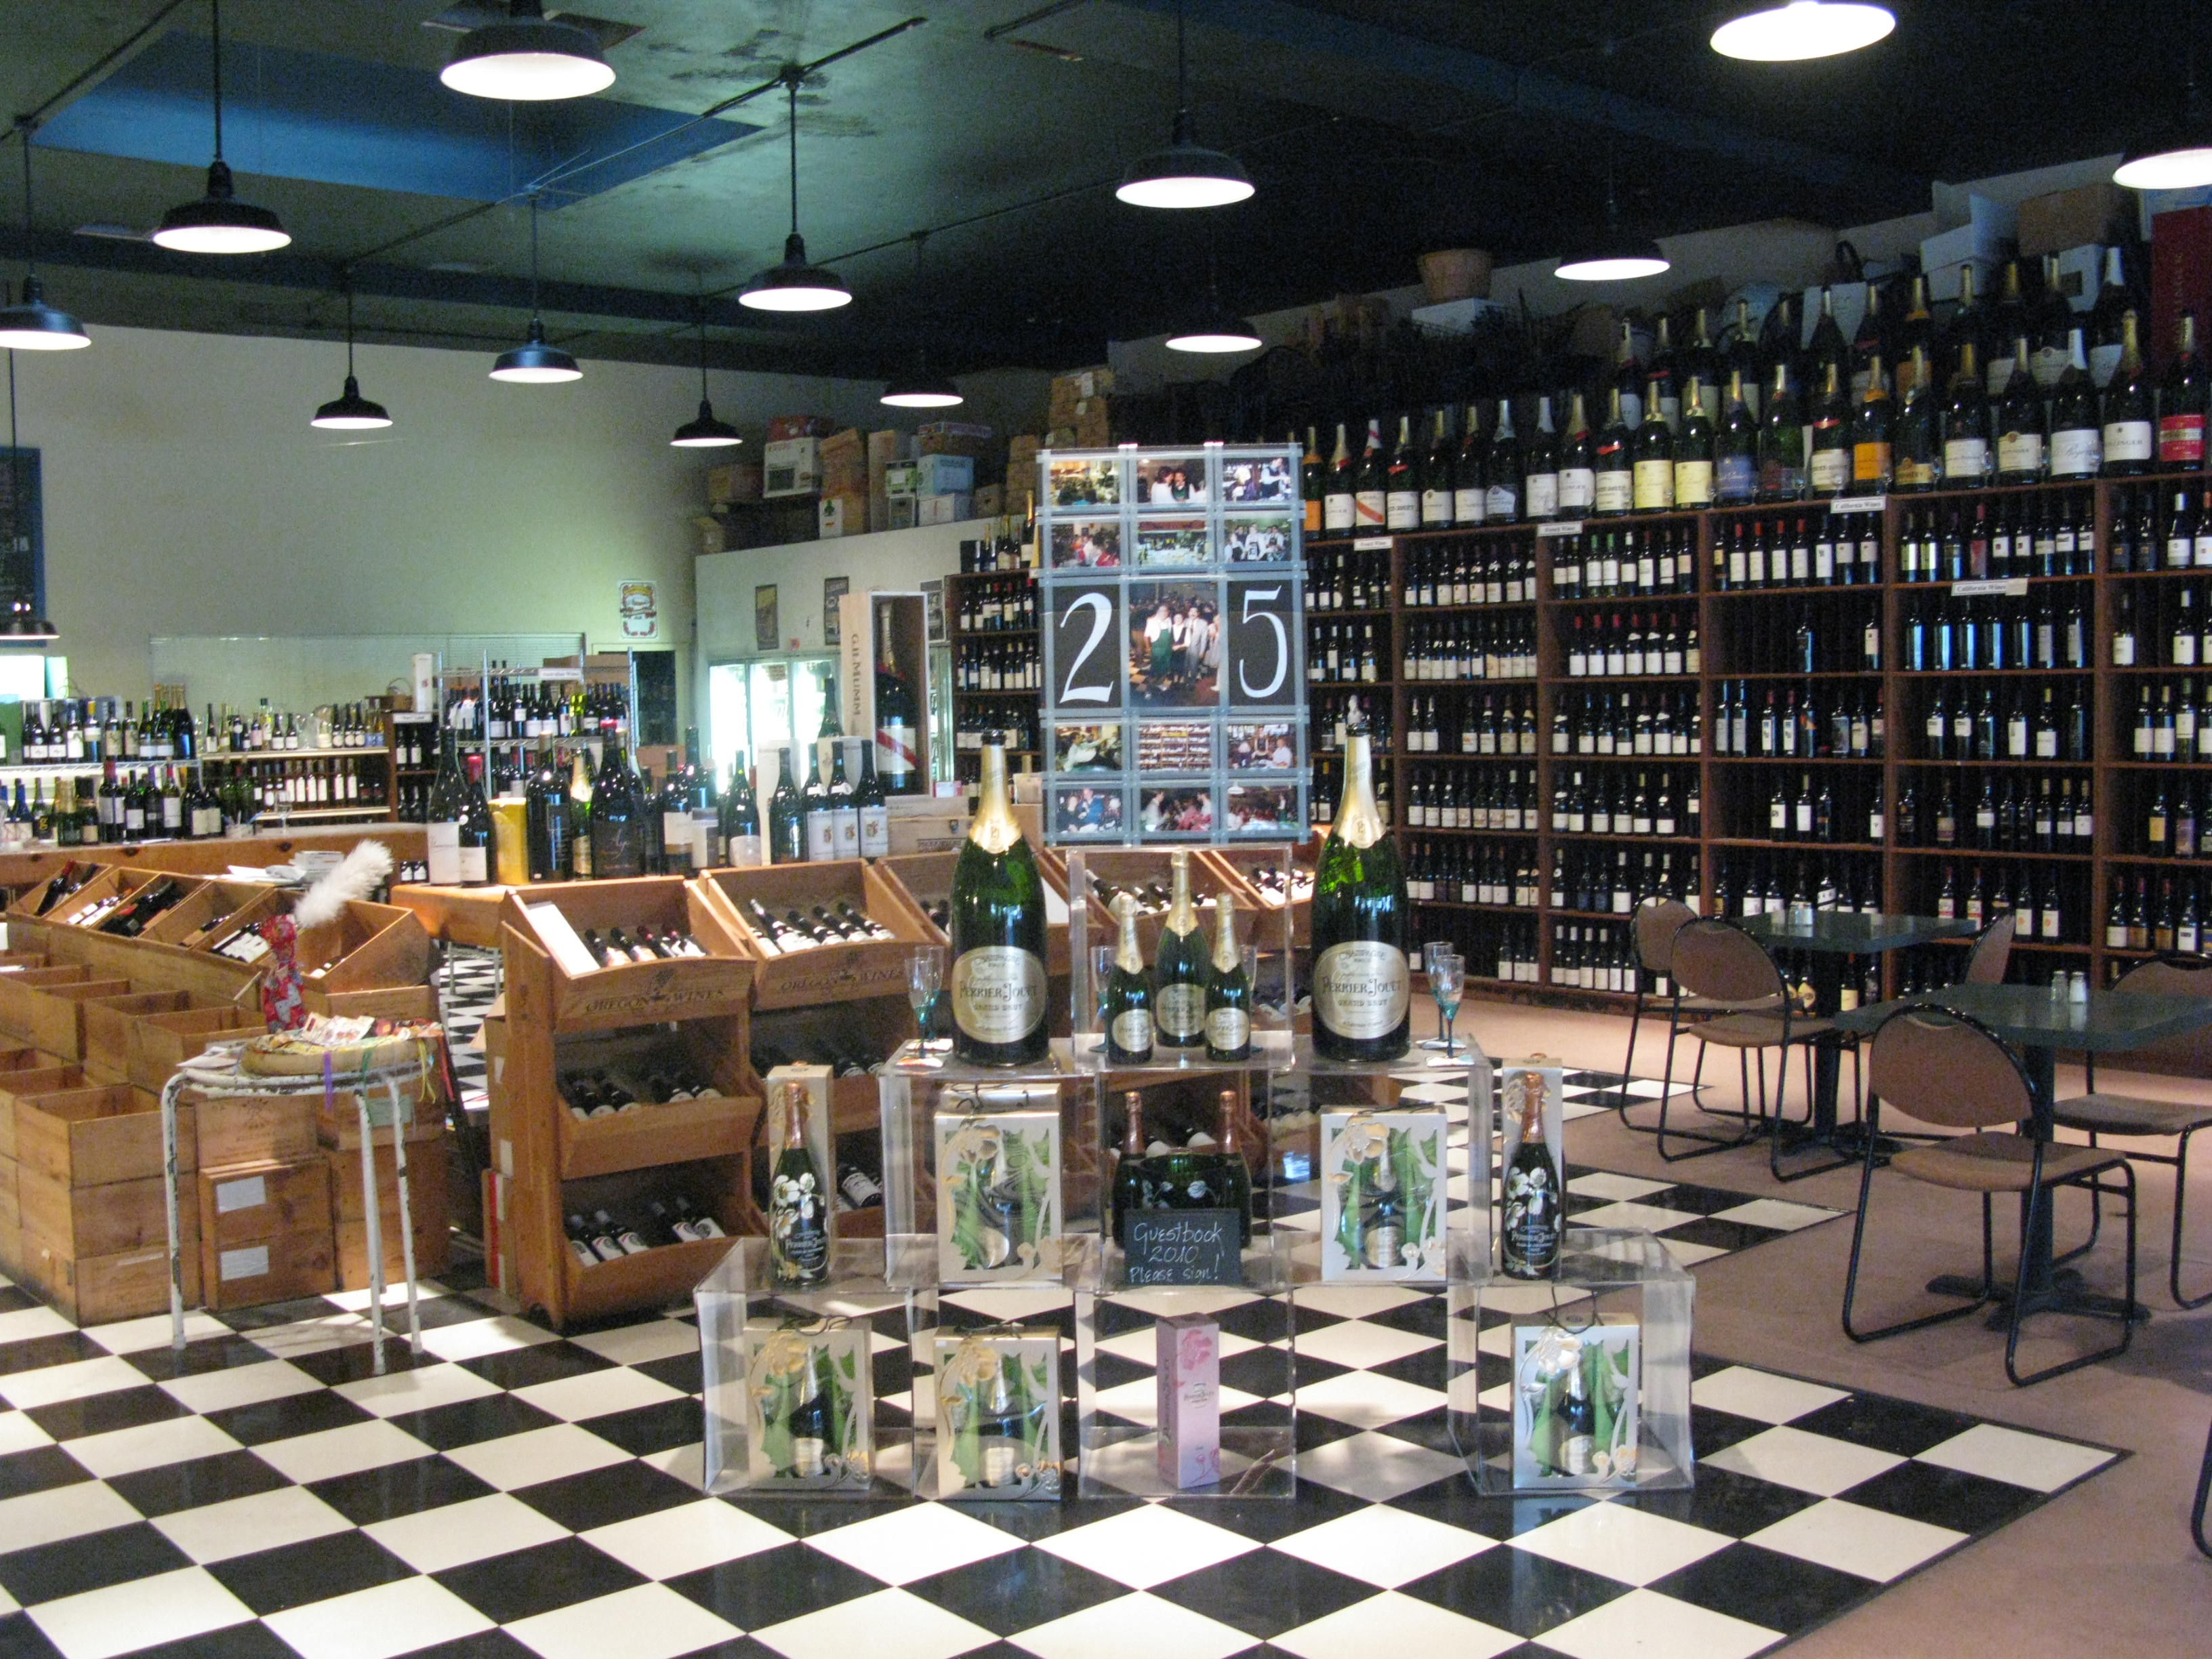 Beer and wine at Woodstock Wine and Deli. (FoystonFoto)